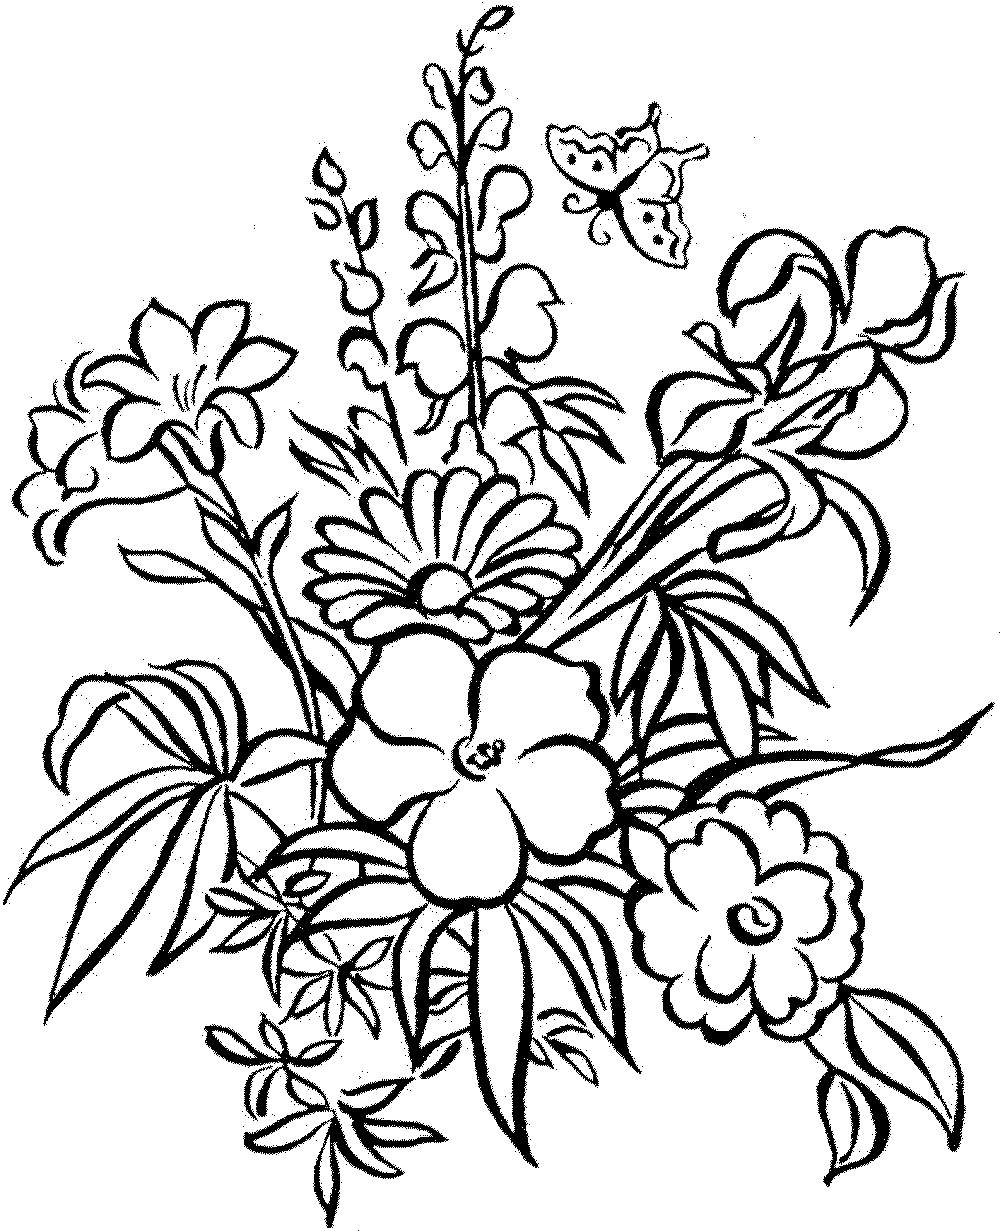 flowers printable coloring pages free printable flower coloring pages for kids cool2bkids printable pages flowers coloring